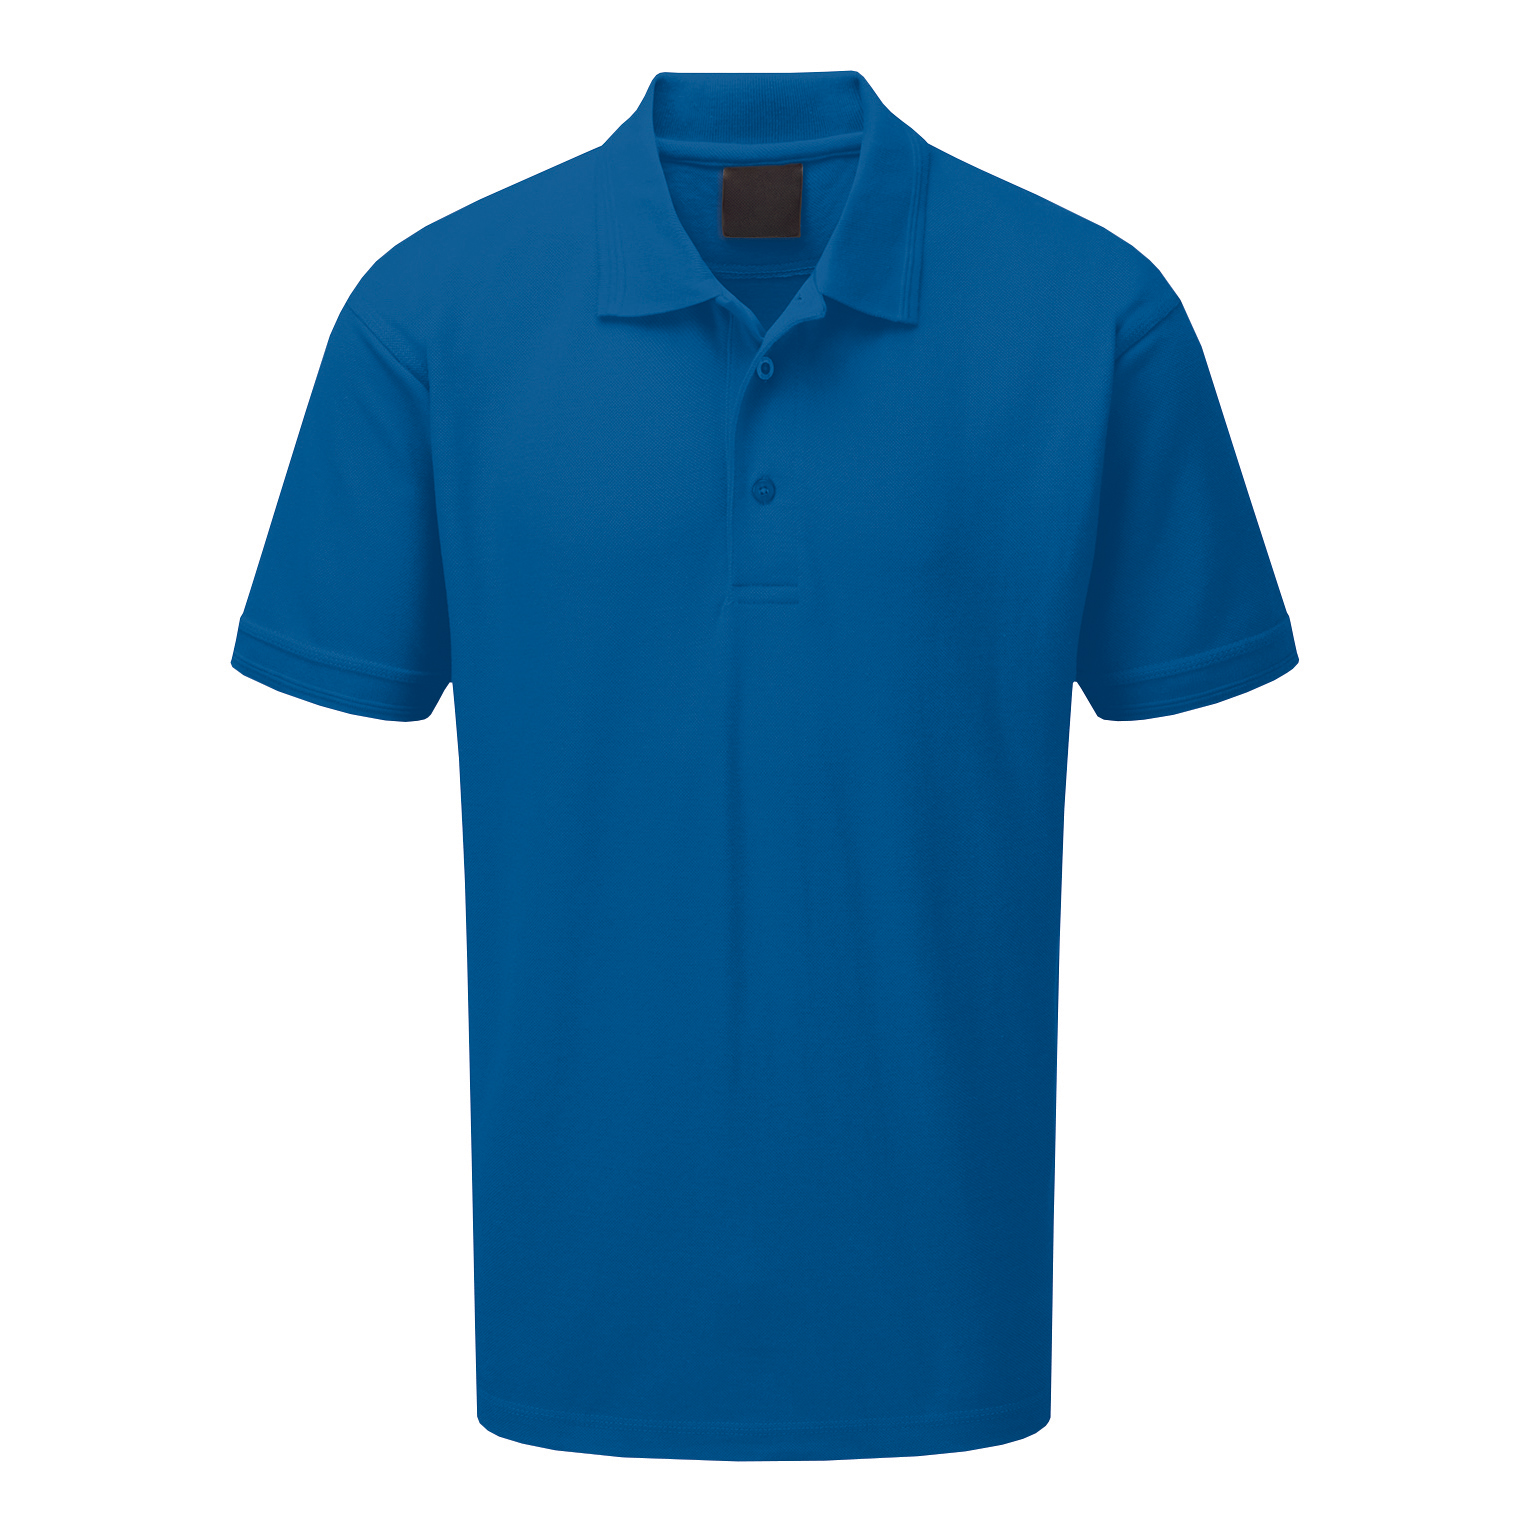 Premium Polo Shirt Triple Button 220gsm Polycotton Medium Royal Blue Ref CLPKSRM *Approx 3 Day Leadtime*